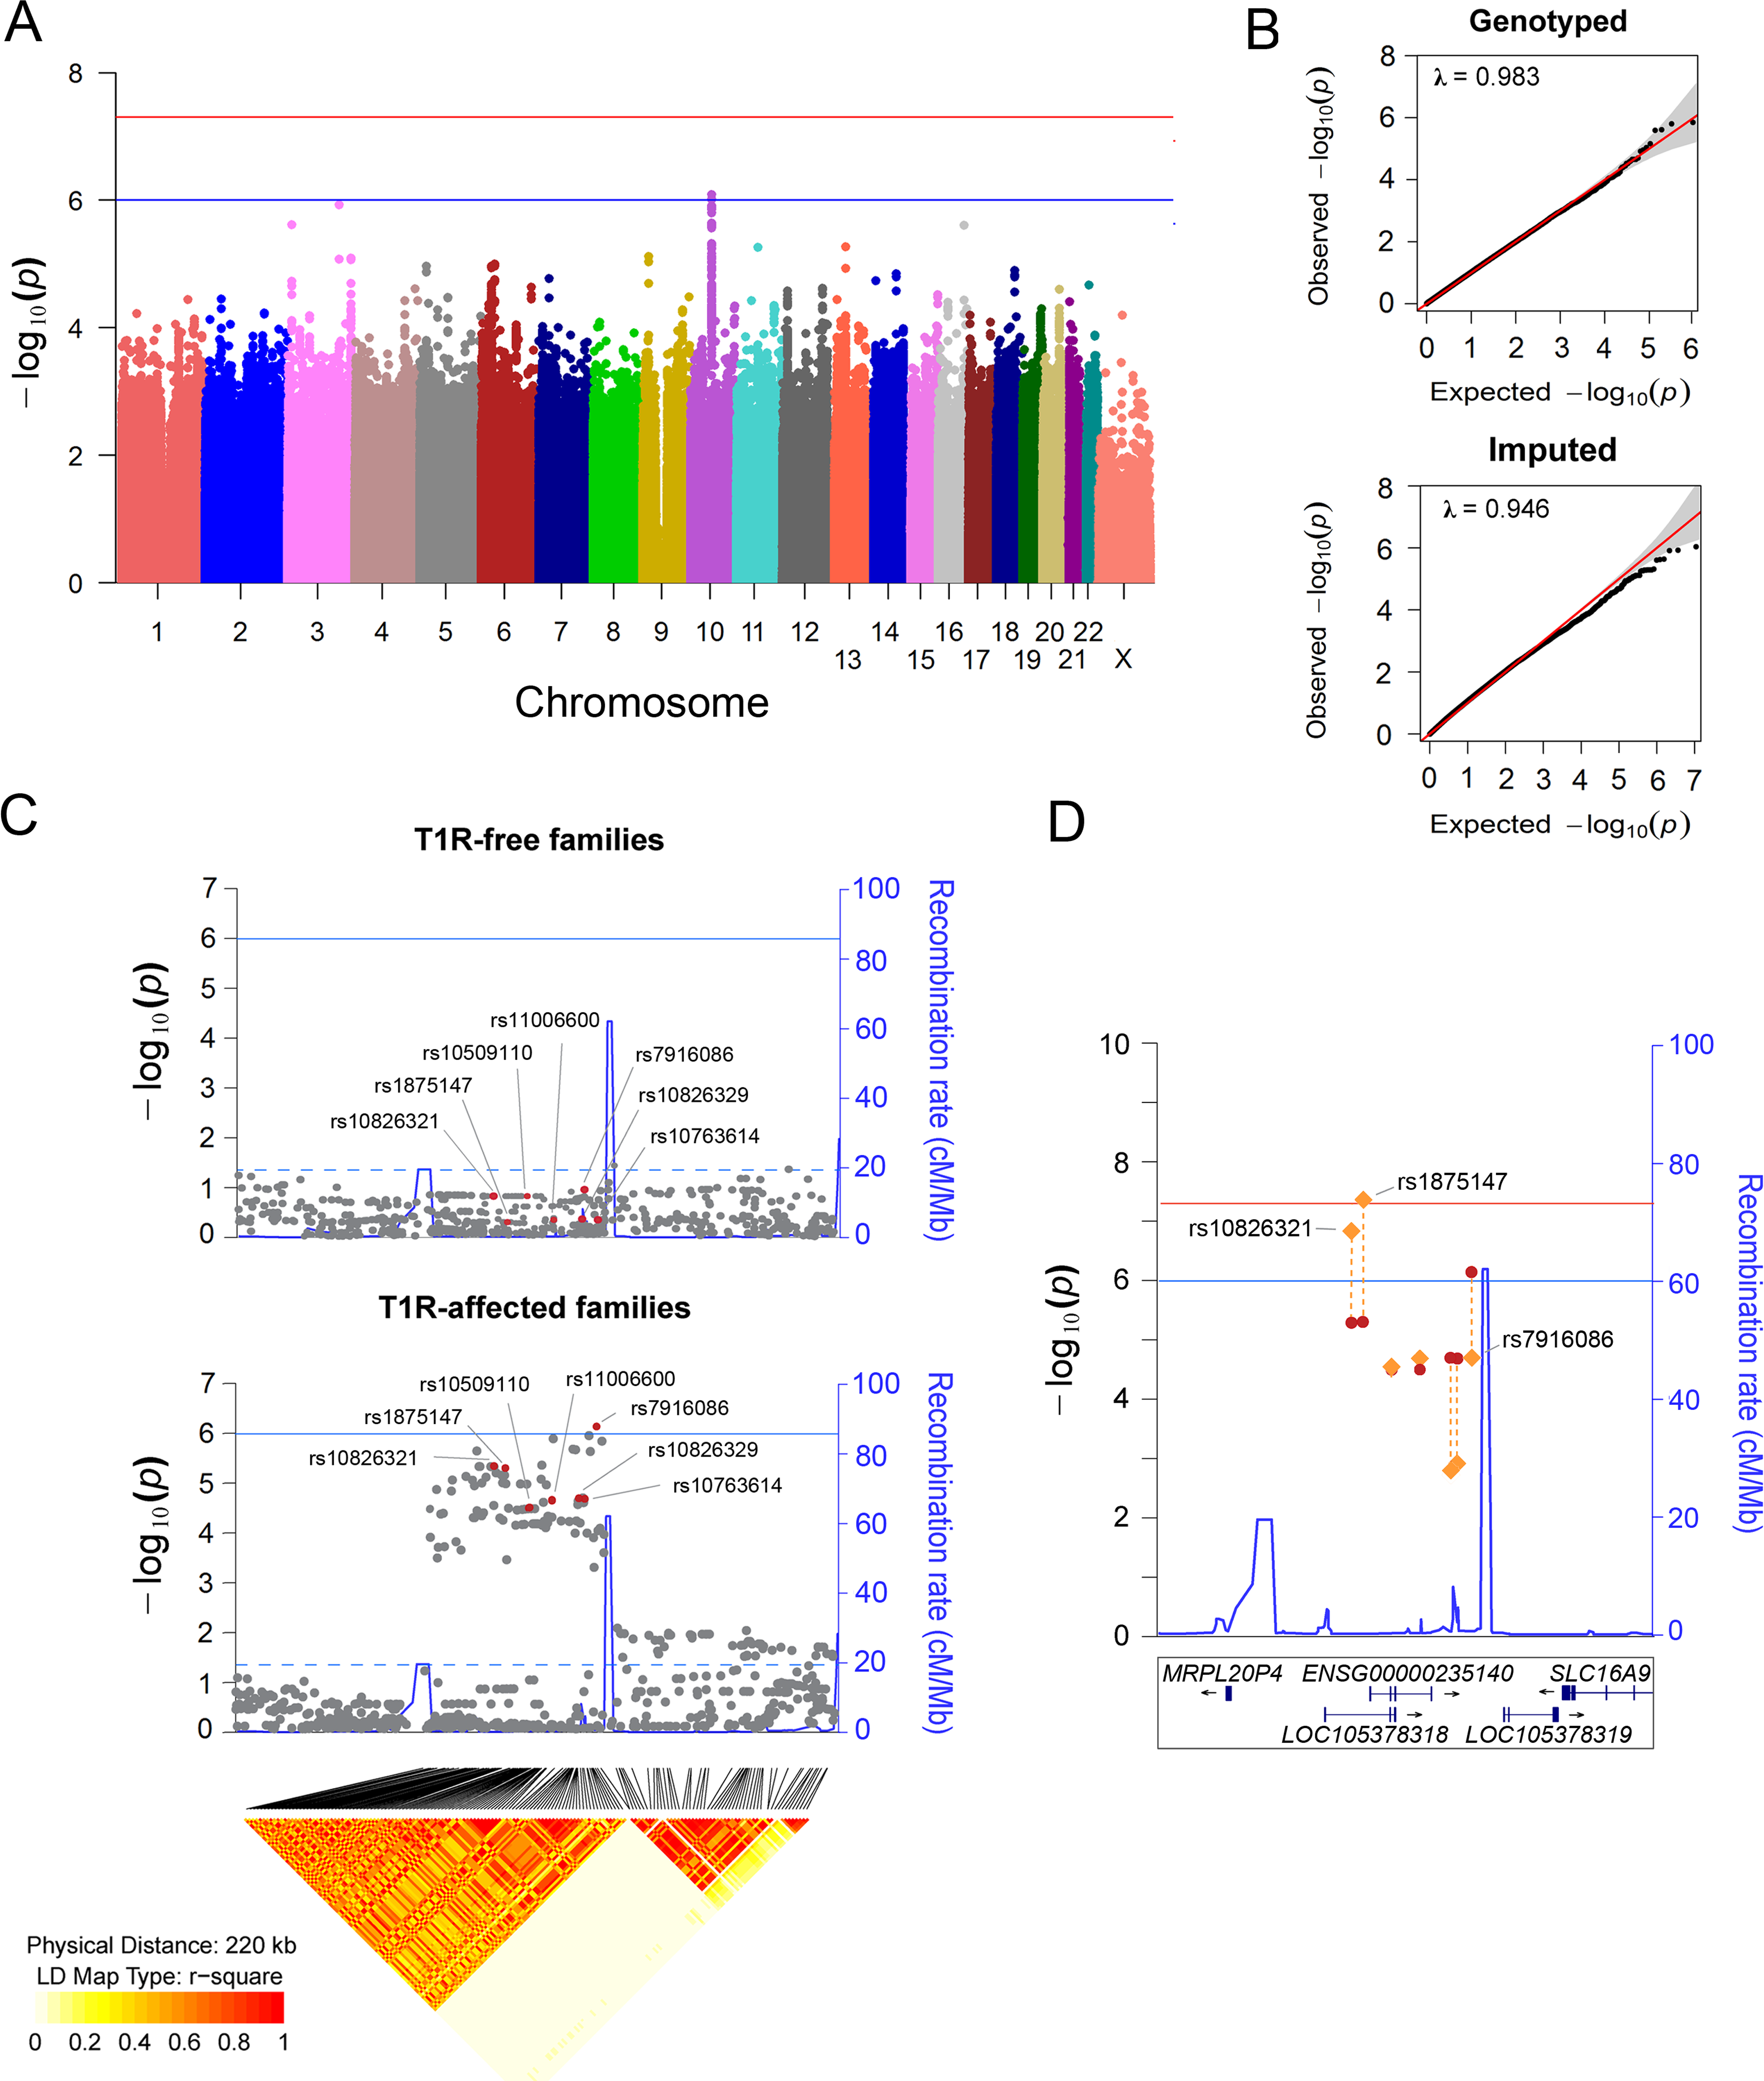 Variants on chromosome 10 are preferentially associated with T1R.